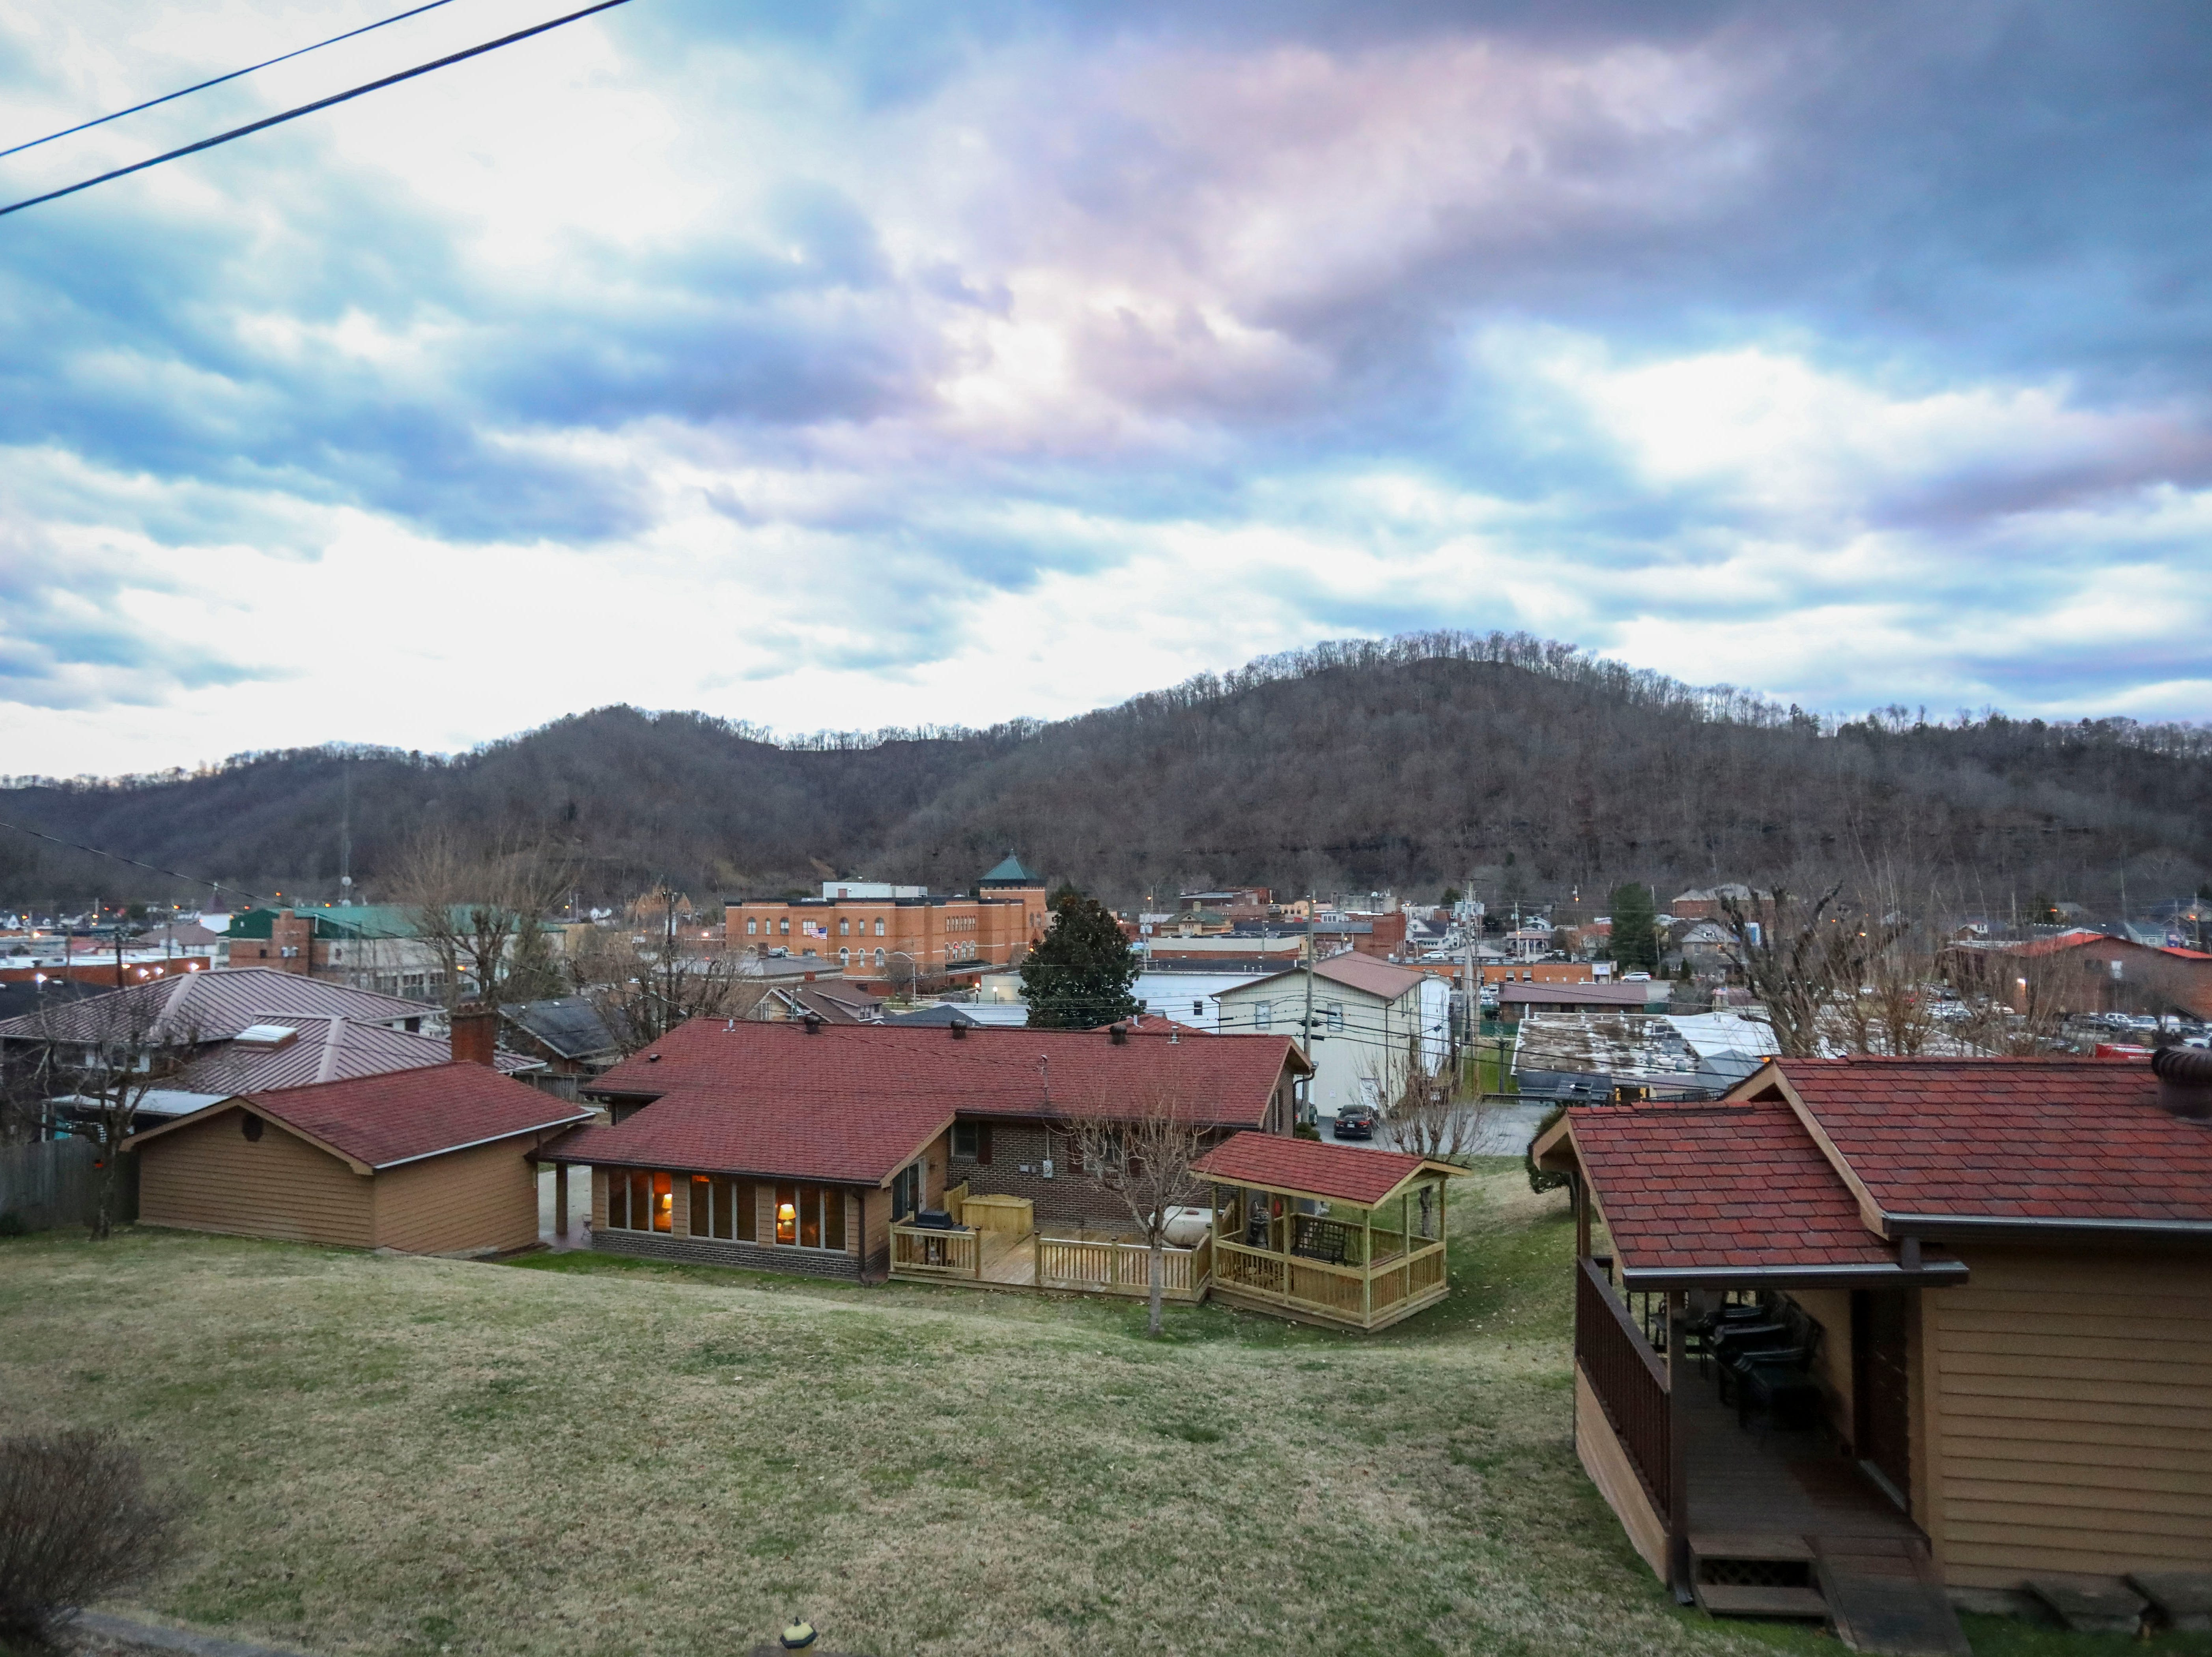 Houses in Prestonsburg, Ky. on Jan. 8, 2019. In 2016, there were an estimated 4,000 cases of hep A in the United States. Since a statewide outbreak was declared in November 2017, Kentucky has had more than 3,500 cases and 22 deaths.